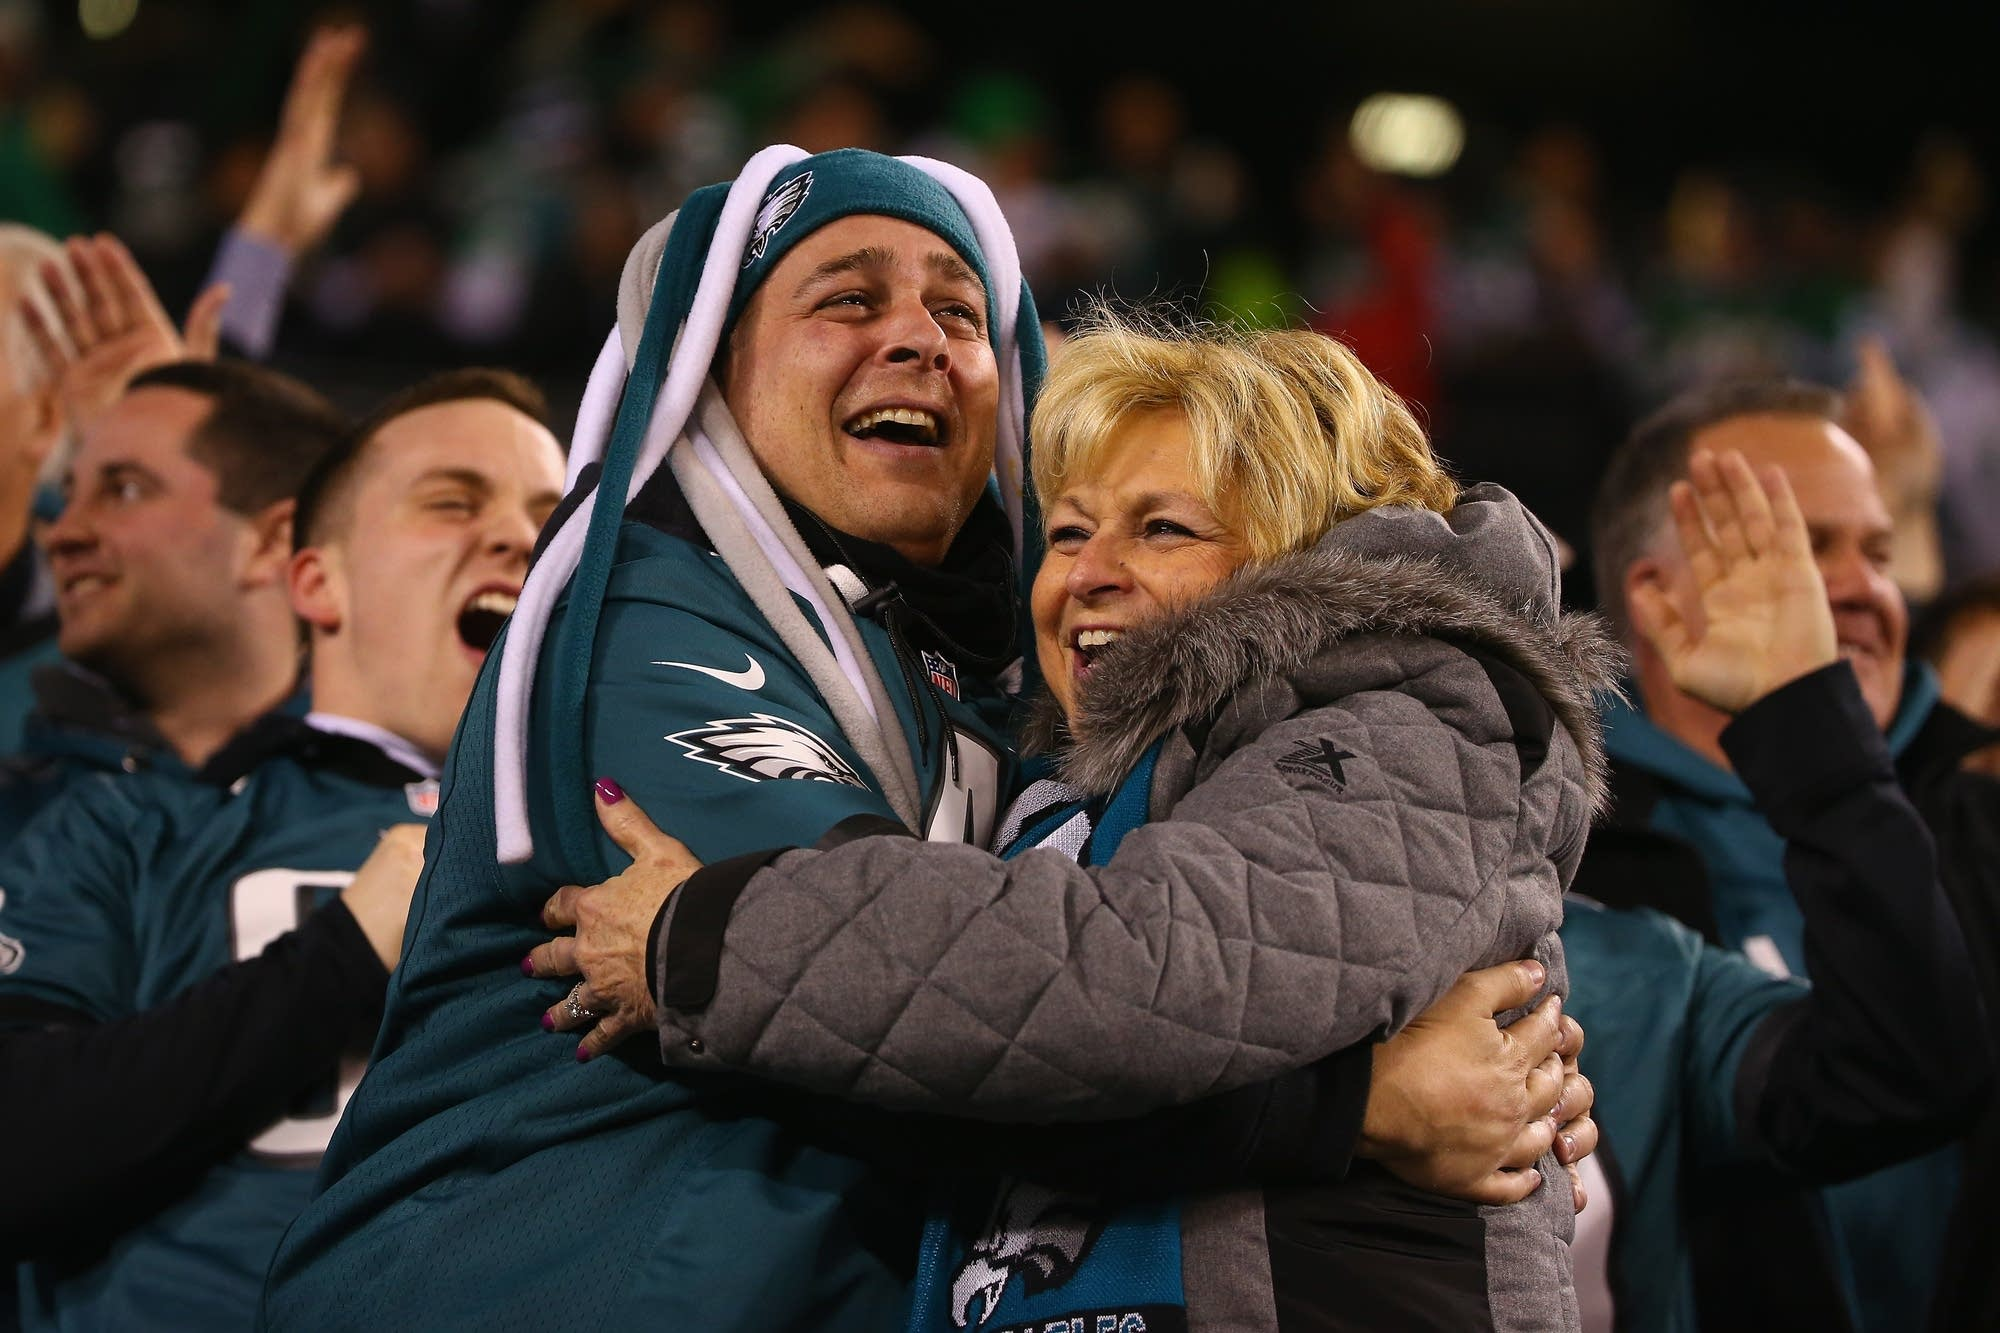 Eagles fans celebrate during the second quarter.